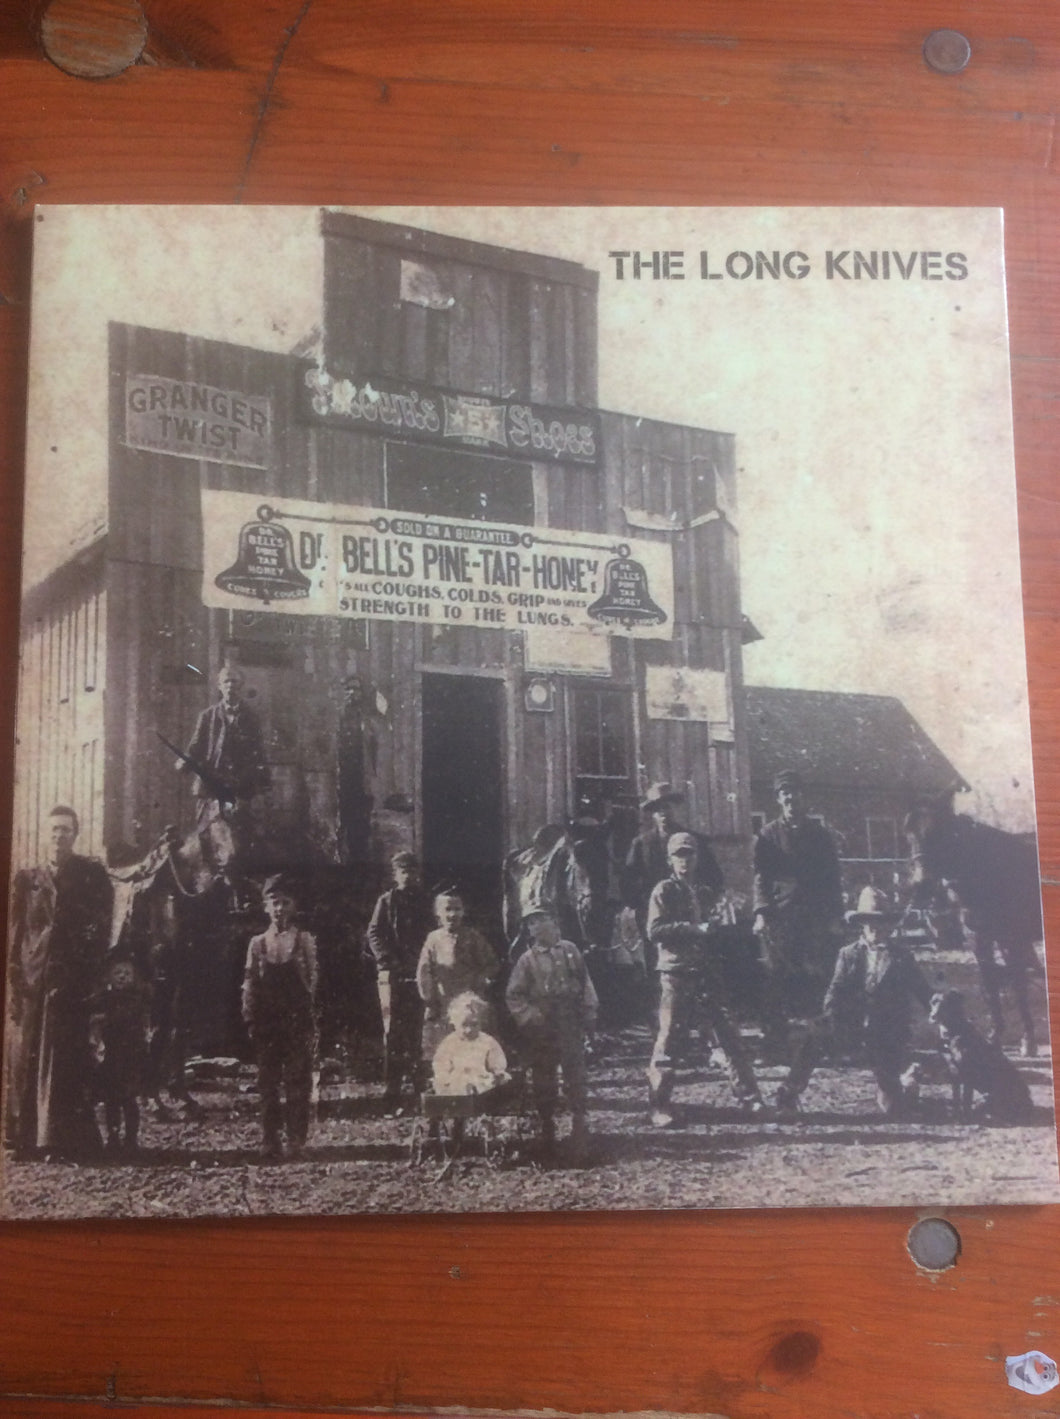 The Long Knives - The Long Knives